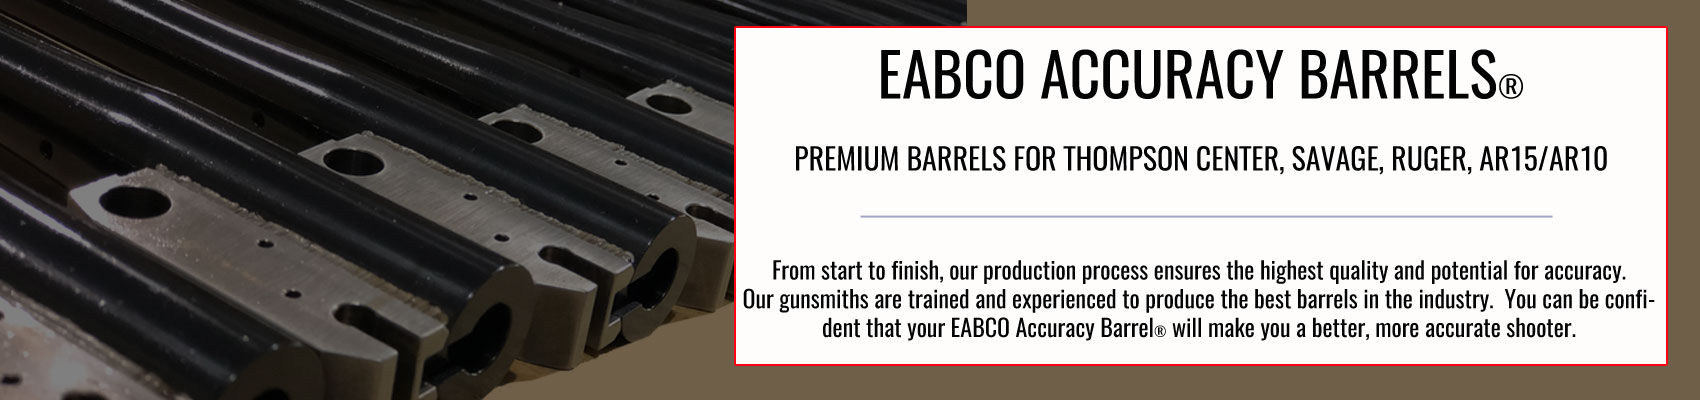 Why Choose EABCO Accuracy Barrels